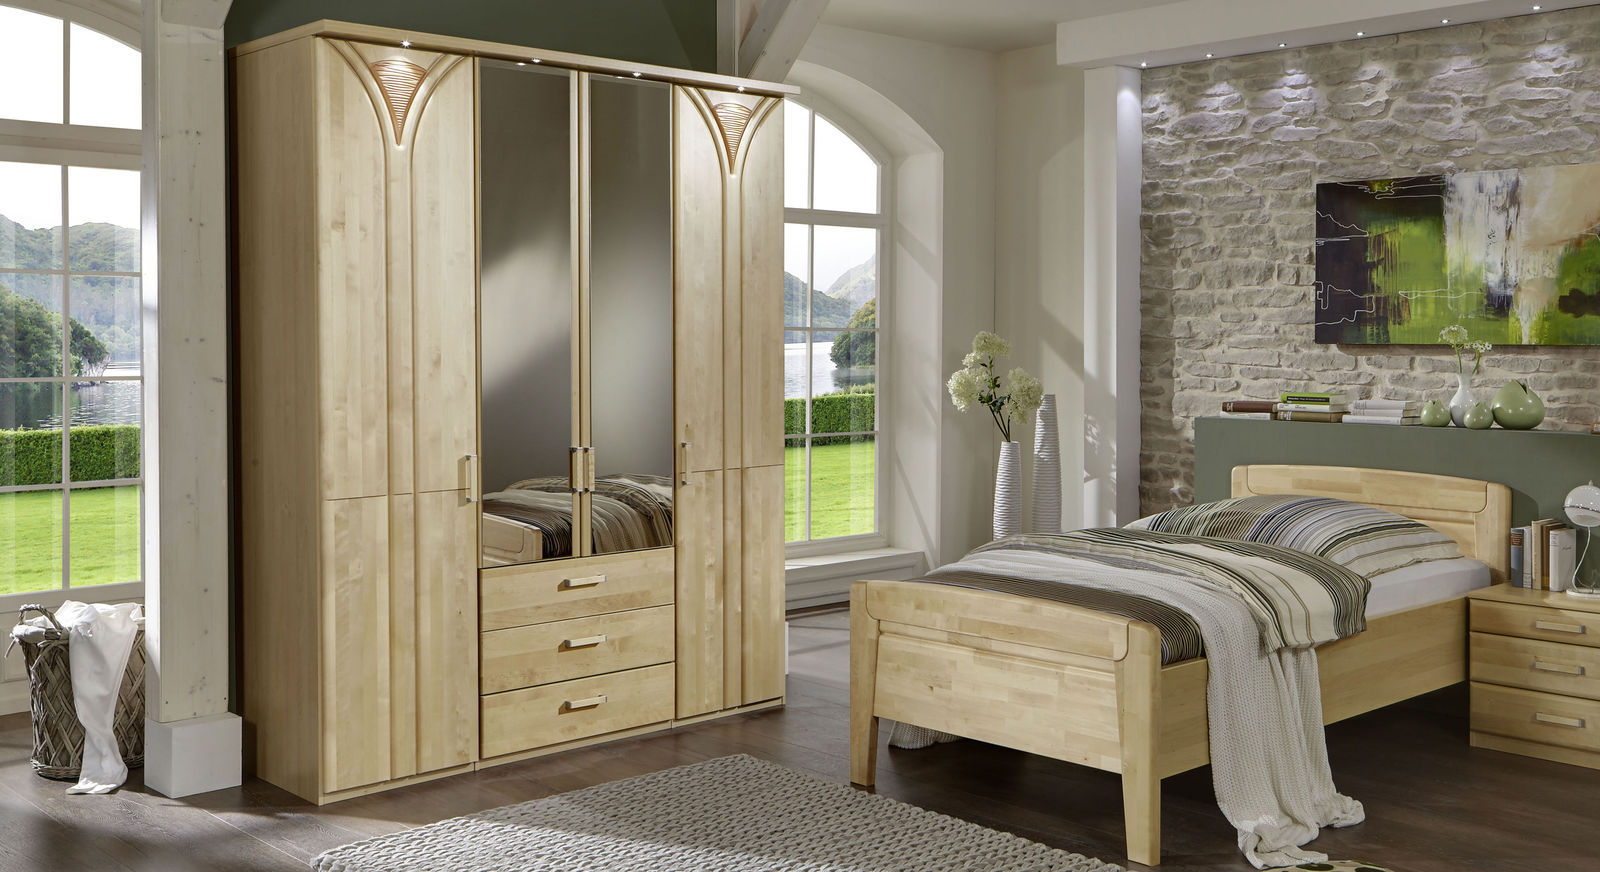 funktions kleiderschrank aus birke hell mit spiegelt ren tonga. Black Bedroom Furniture Sets. Home Design Ideas